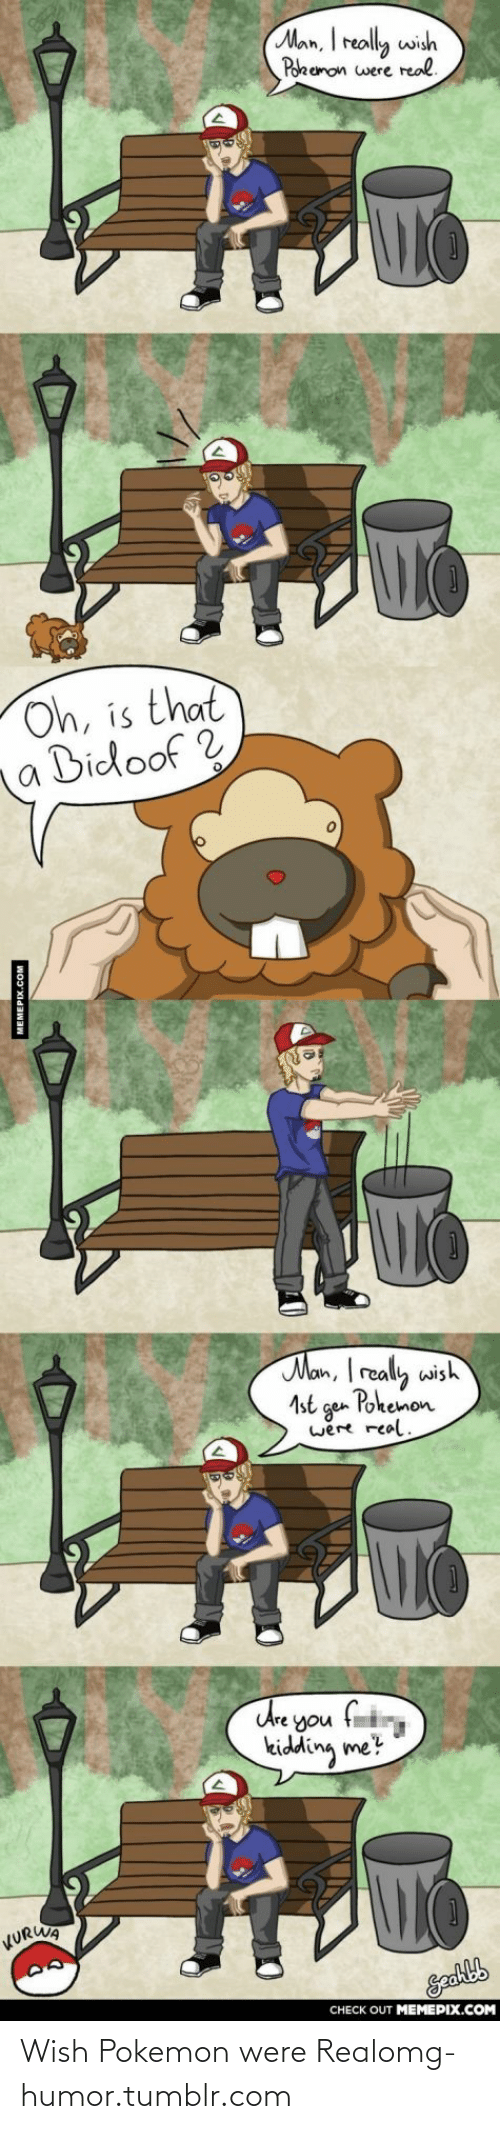 bidoof: Man, I really wish  Pokemon were real.  Oh, is that  Bidoof ?  Man, I really wish  Pokemon  1st  gen  were real.  Are you fi  kidding me?  KURWA  CHECK OUT MEMEPIX.COM  MEMEPIX.COM Wish Pokemon were Realomg-humor.tumblr.com